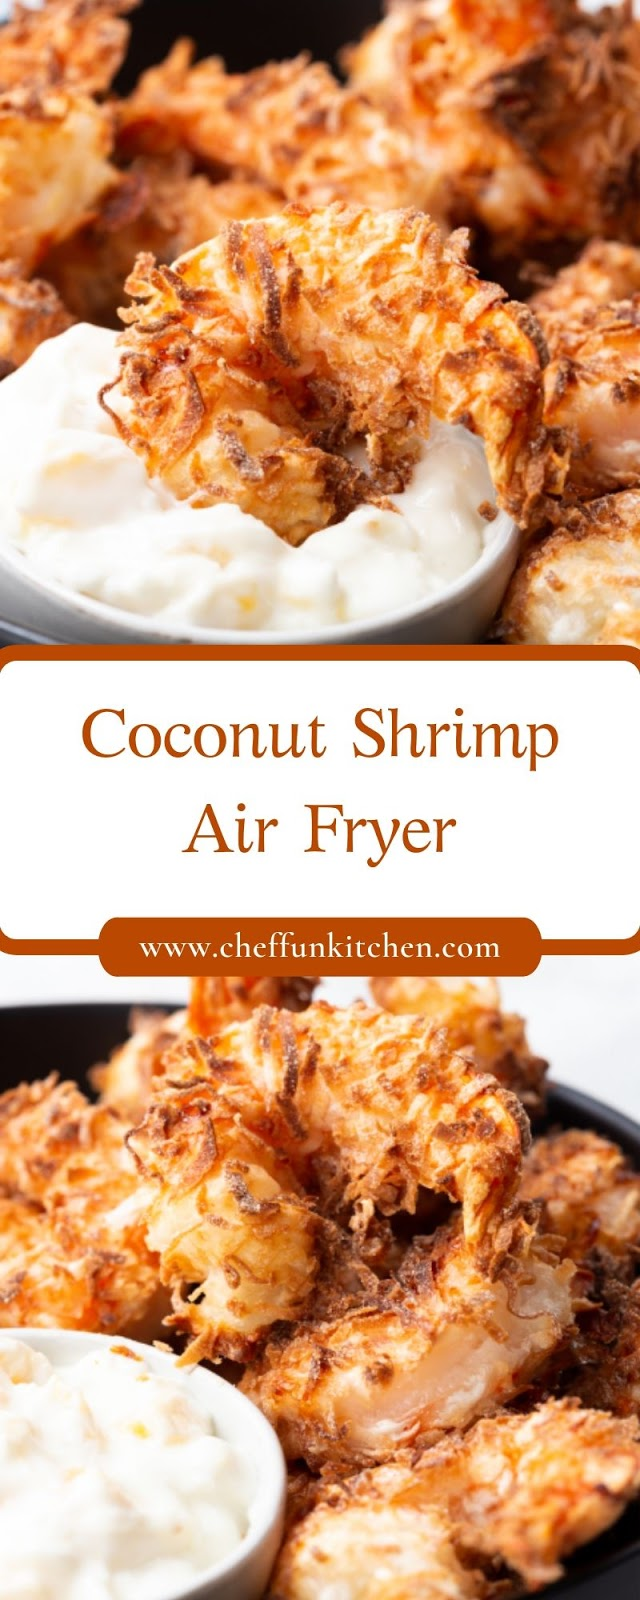 Coconut Shrimp – Air Fryer